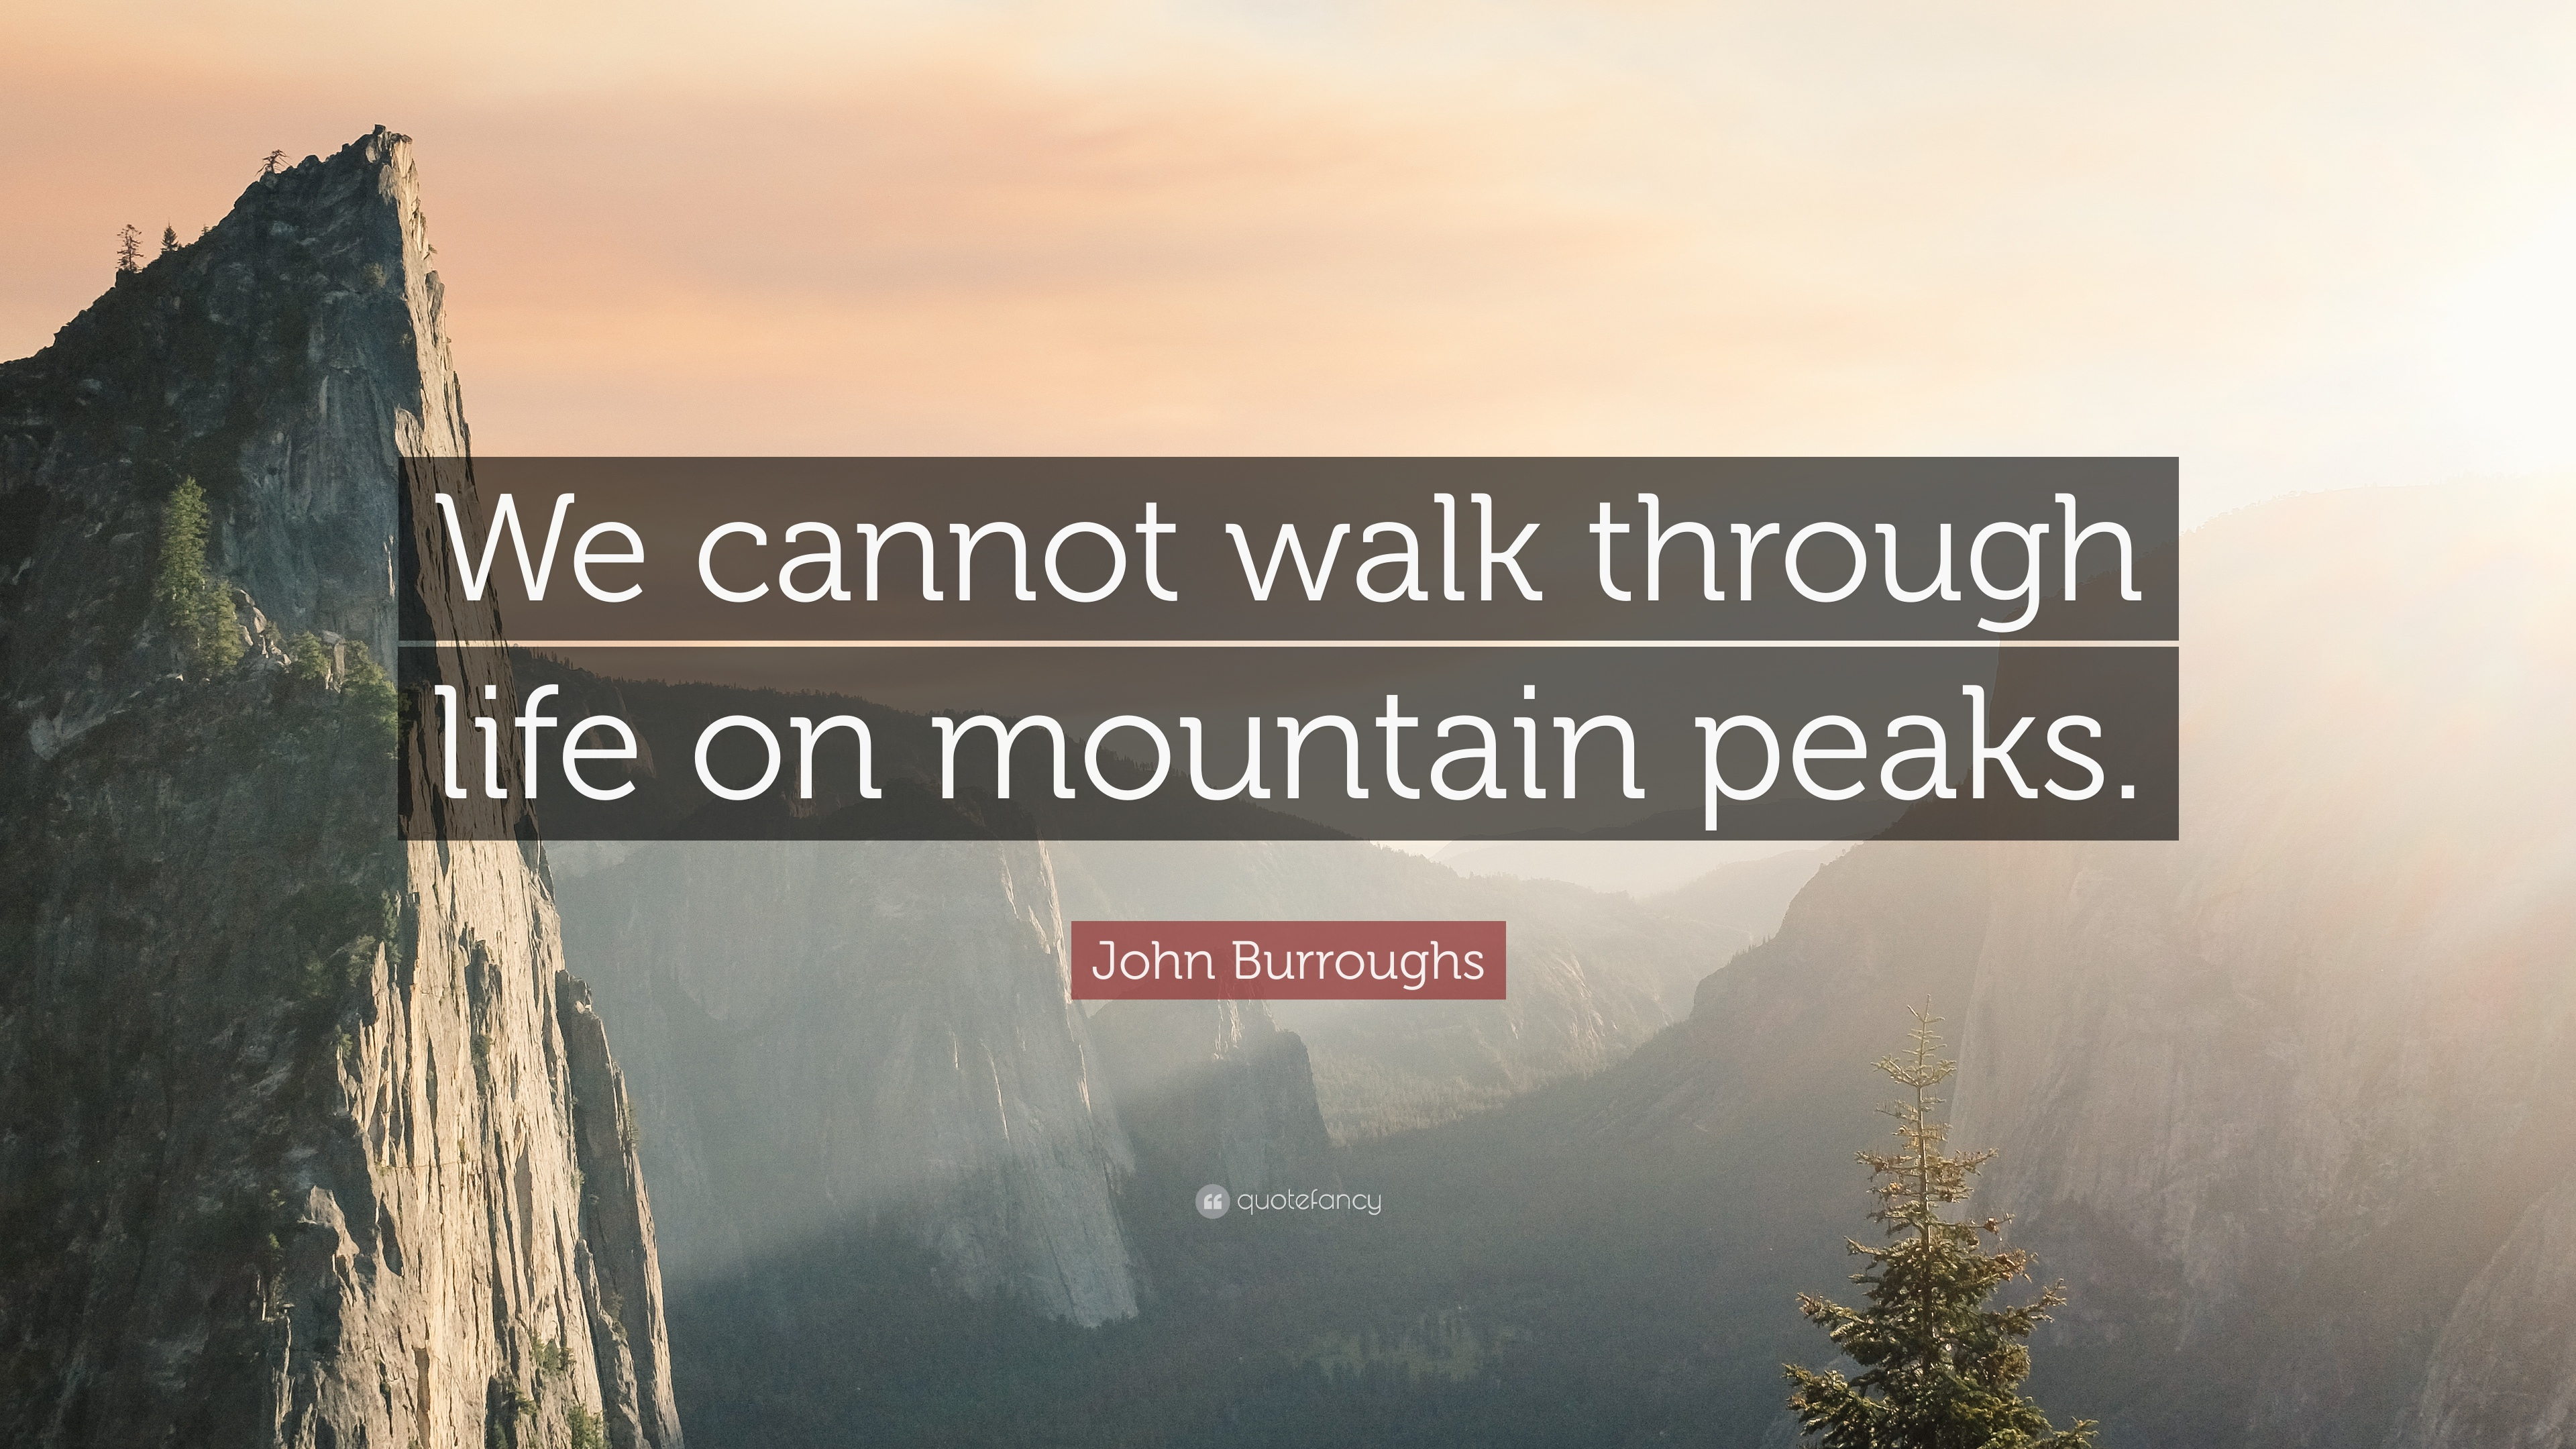 John Burroughs Quote: U201cWe Cannot Walk Through Life On Mountain Peaks.u201d